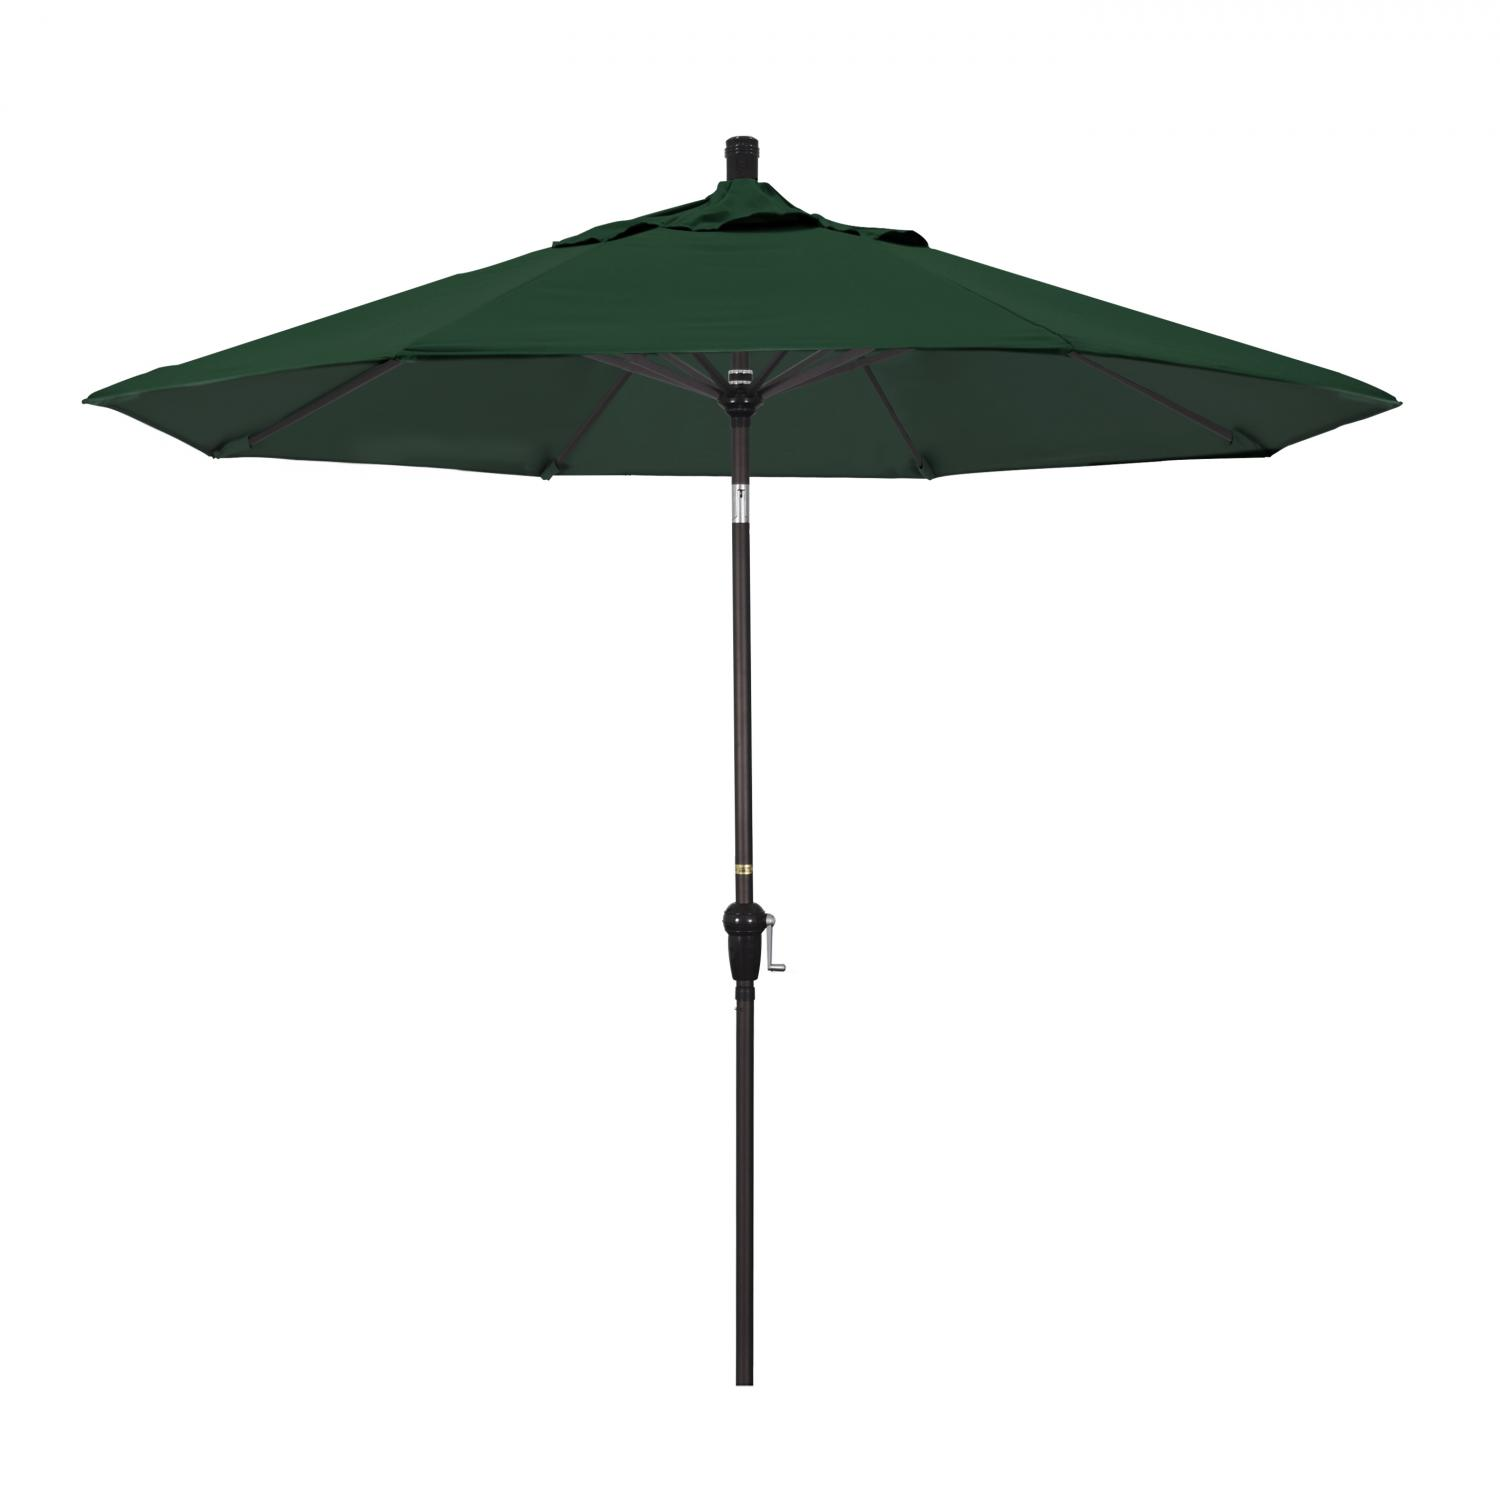 California Umbrella 9 Ft. Octagonal Aluminum Auto Tilt Patio Umbrella W/ Crank Lift & Aluminum Ribs - Bronze Frame / Olefin Hunter Green Canopy